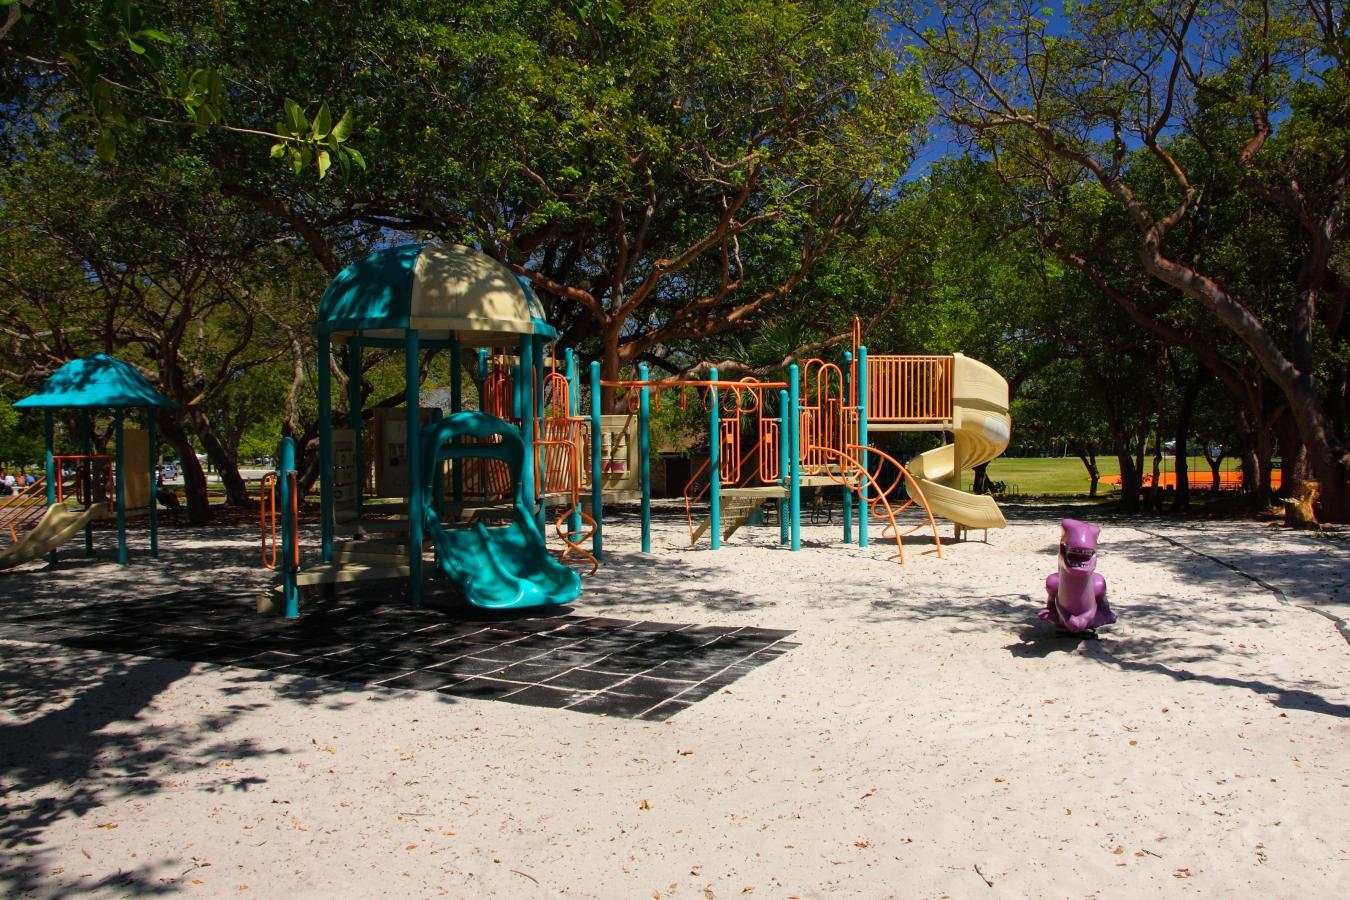 Peacock Park kids playground